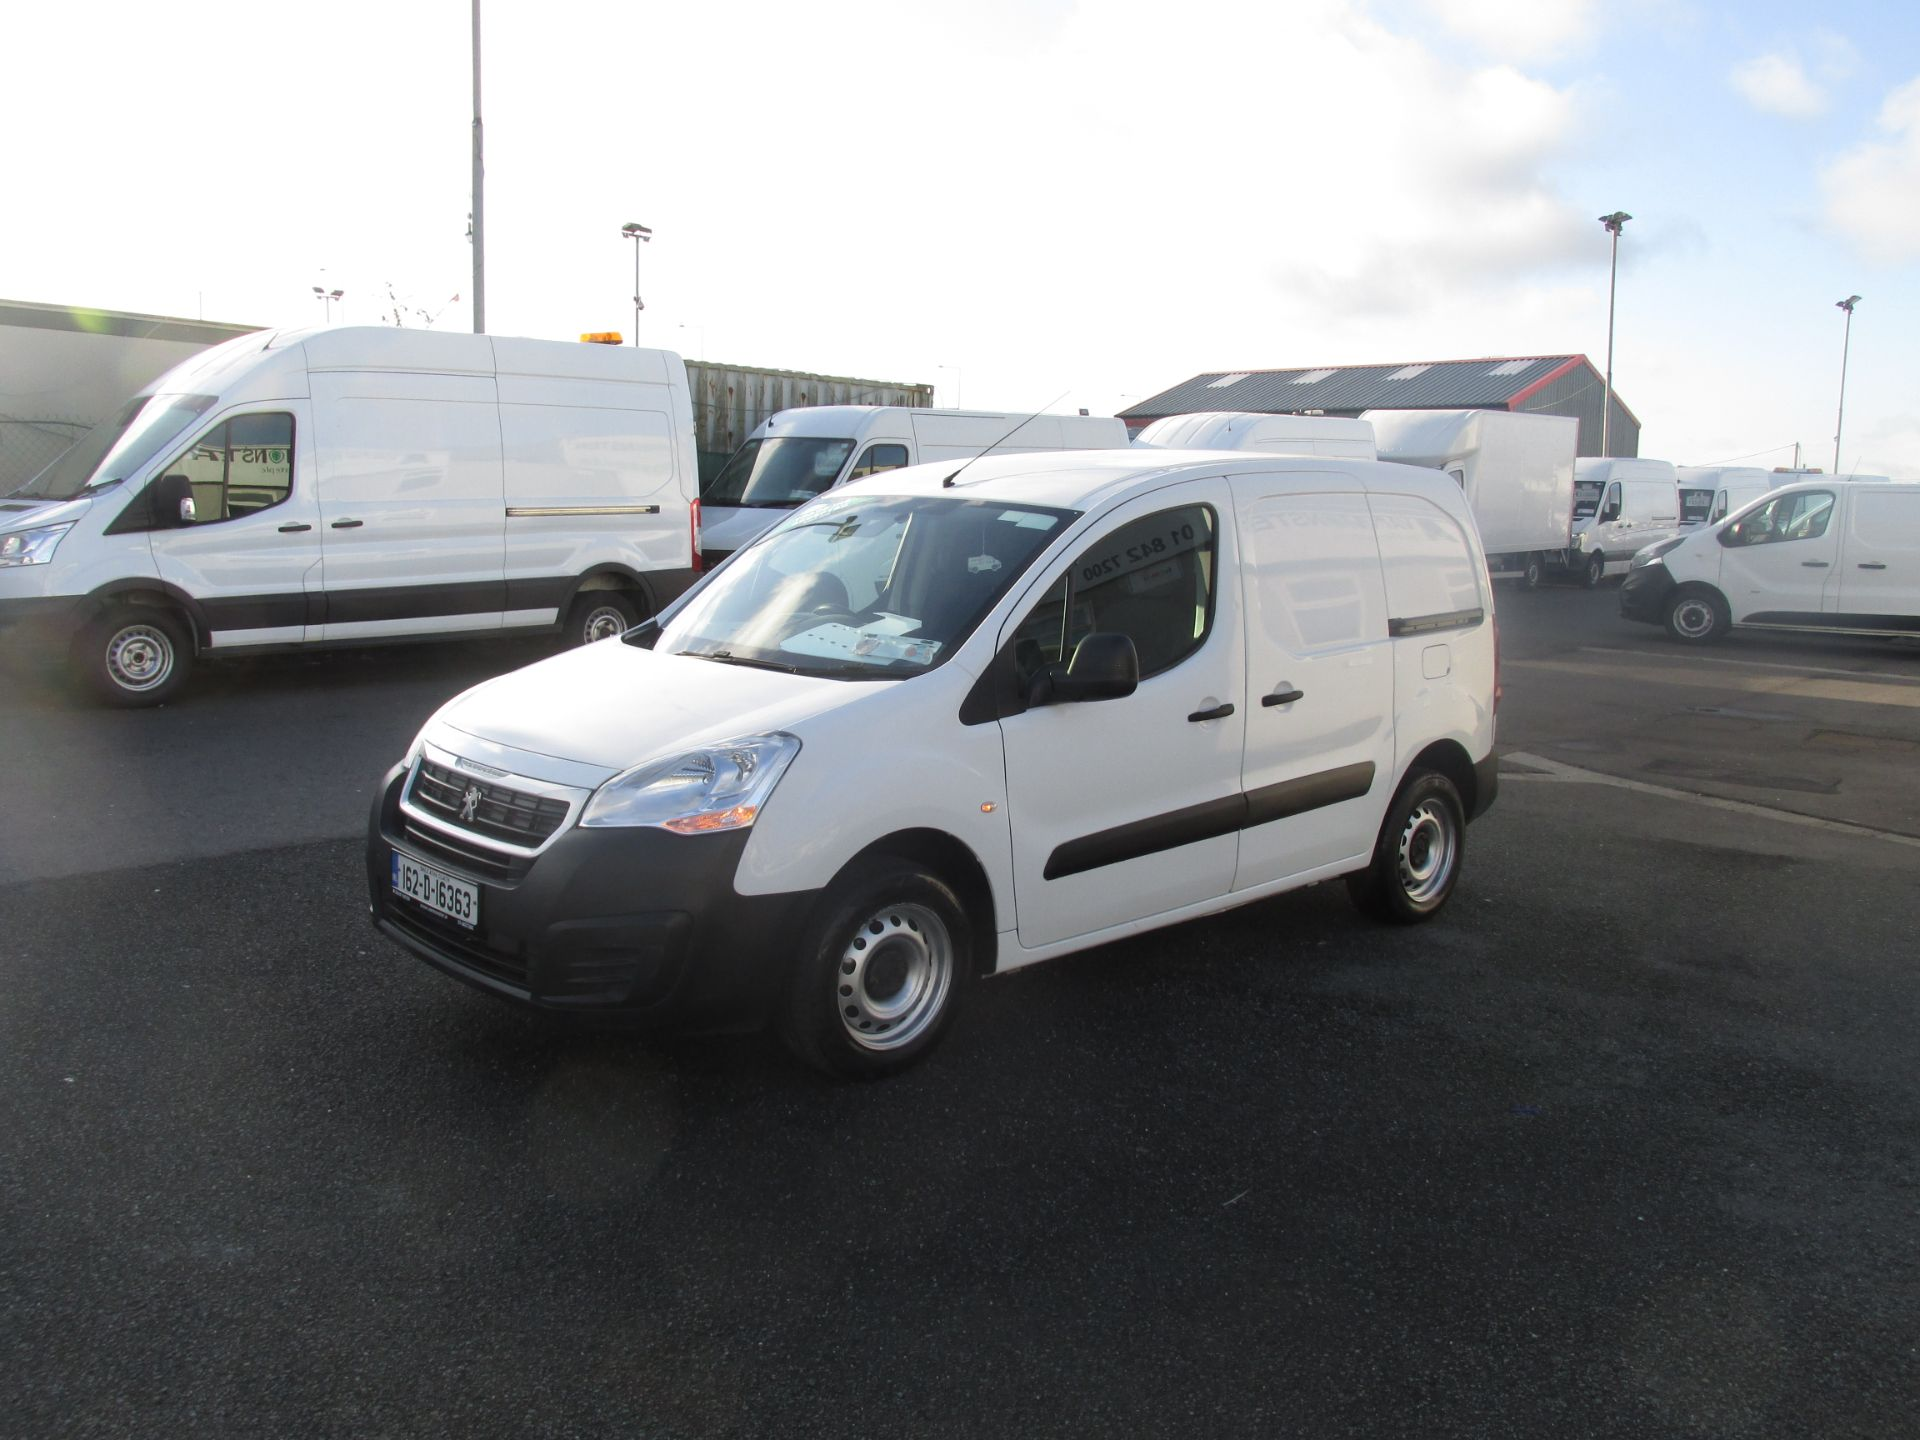 2016 Peugeot Partner #150 VANS TO VIEW IN SANTRY # (162D16363) Image 3